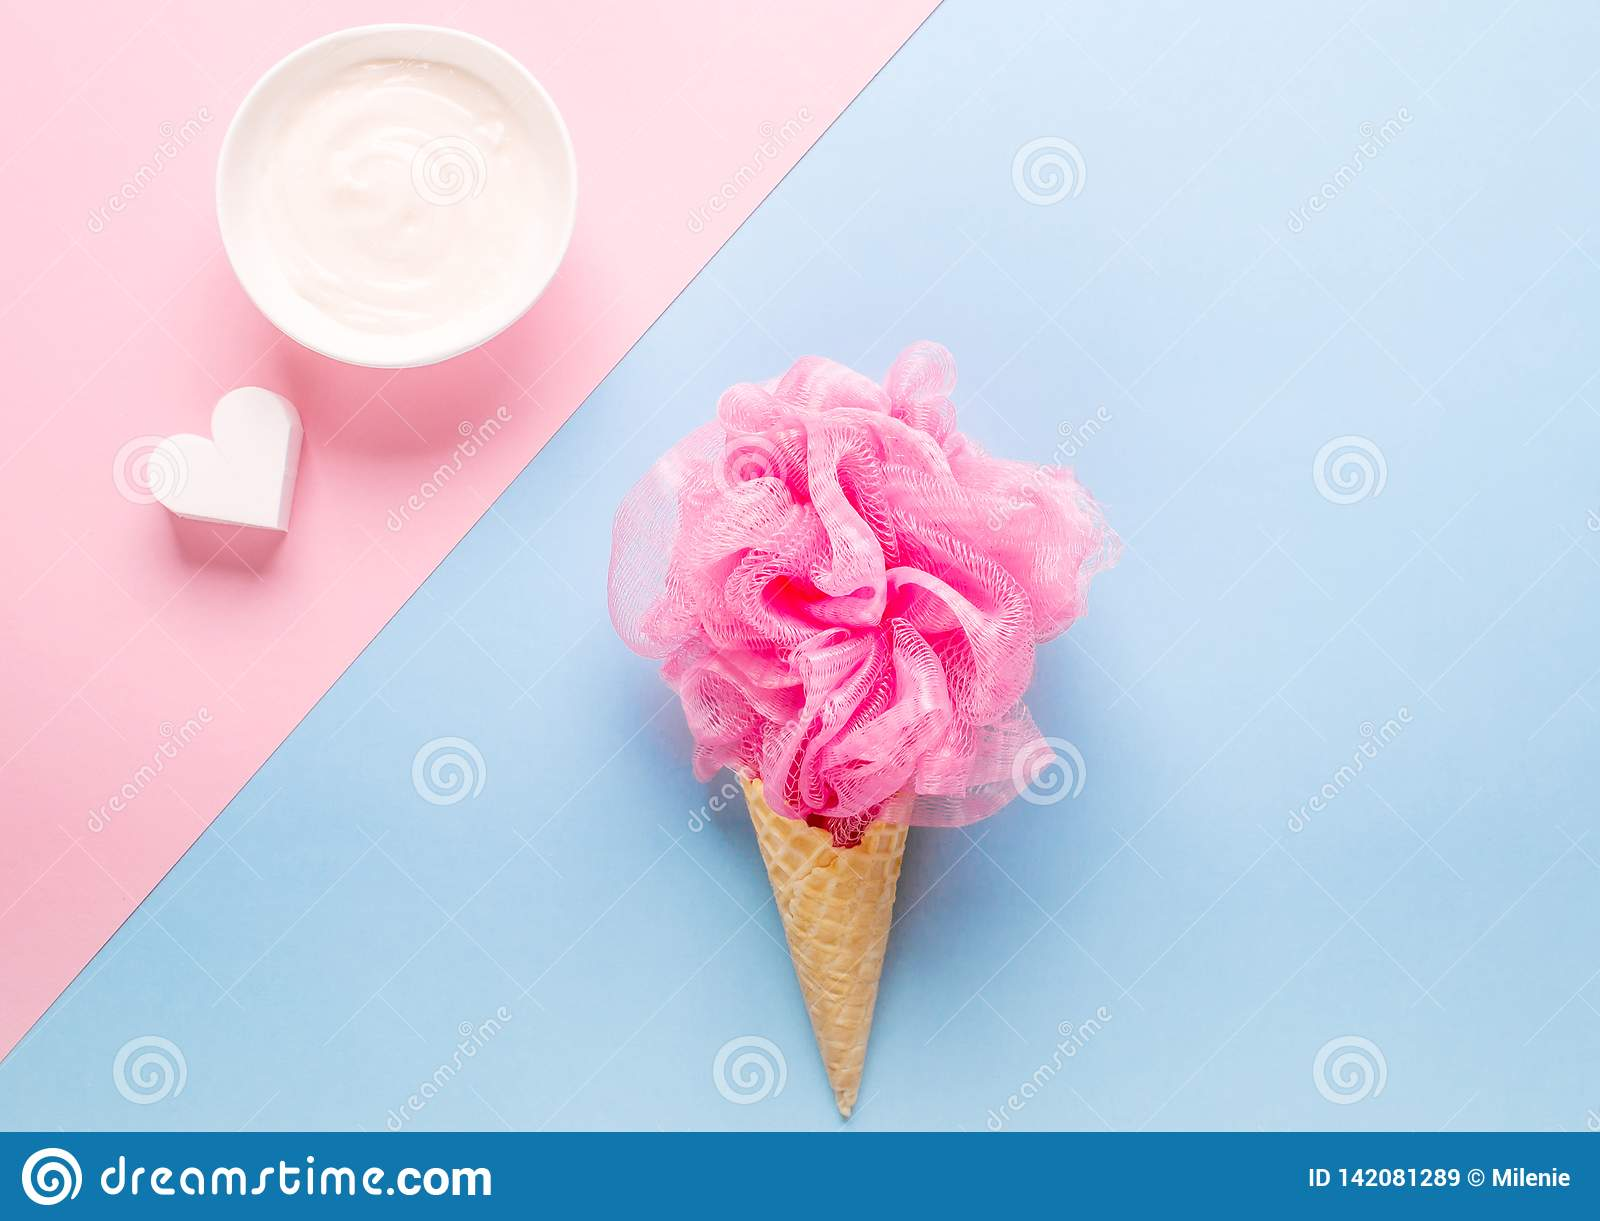 Composition of ice cream cone with pink wisp of bast on a light blue background